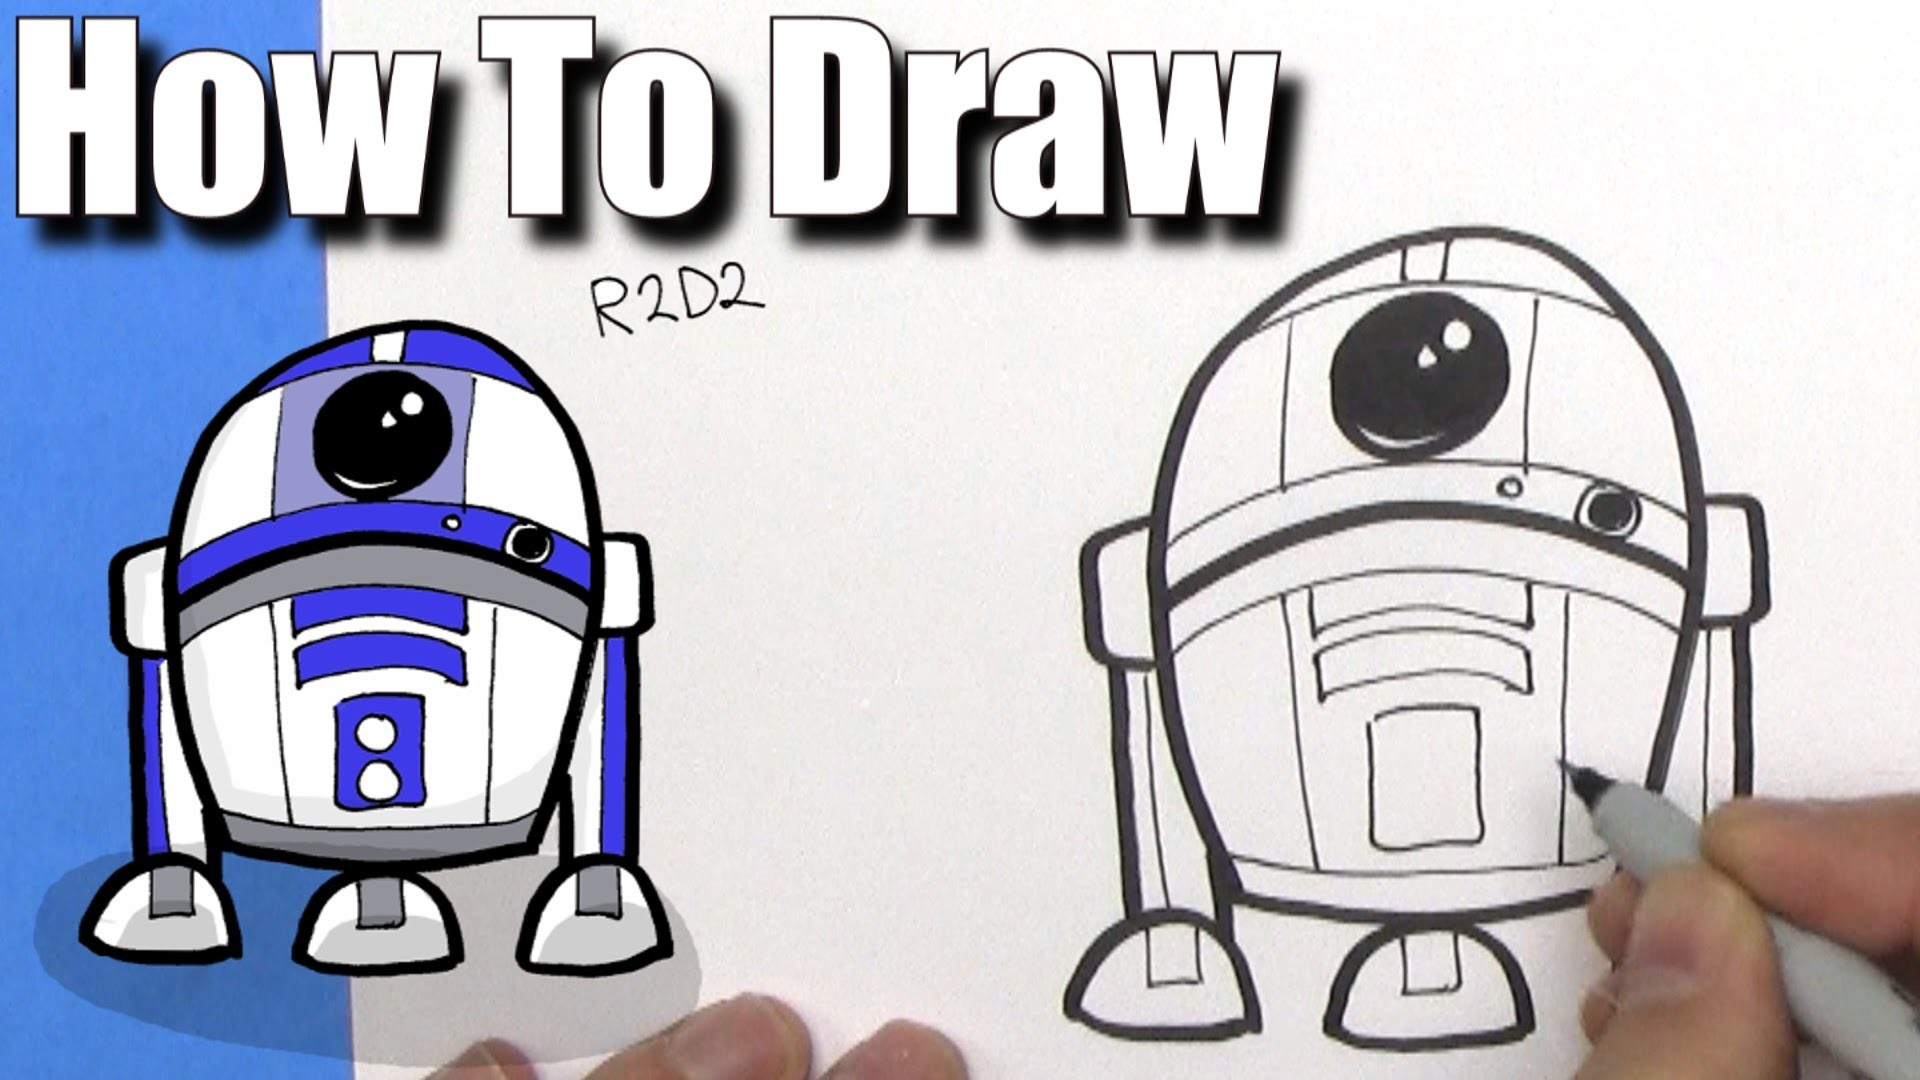 How To Draw Cute Cartoon R2D2 Droid – EASY Chibi – Step By Step – Kawaii –  YouTube